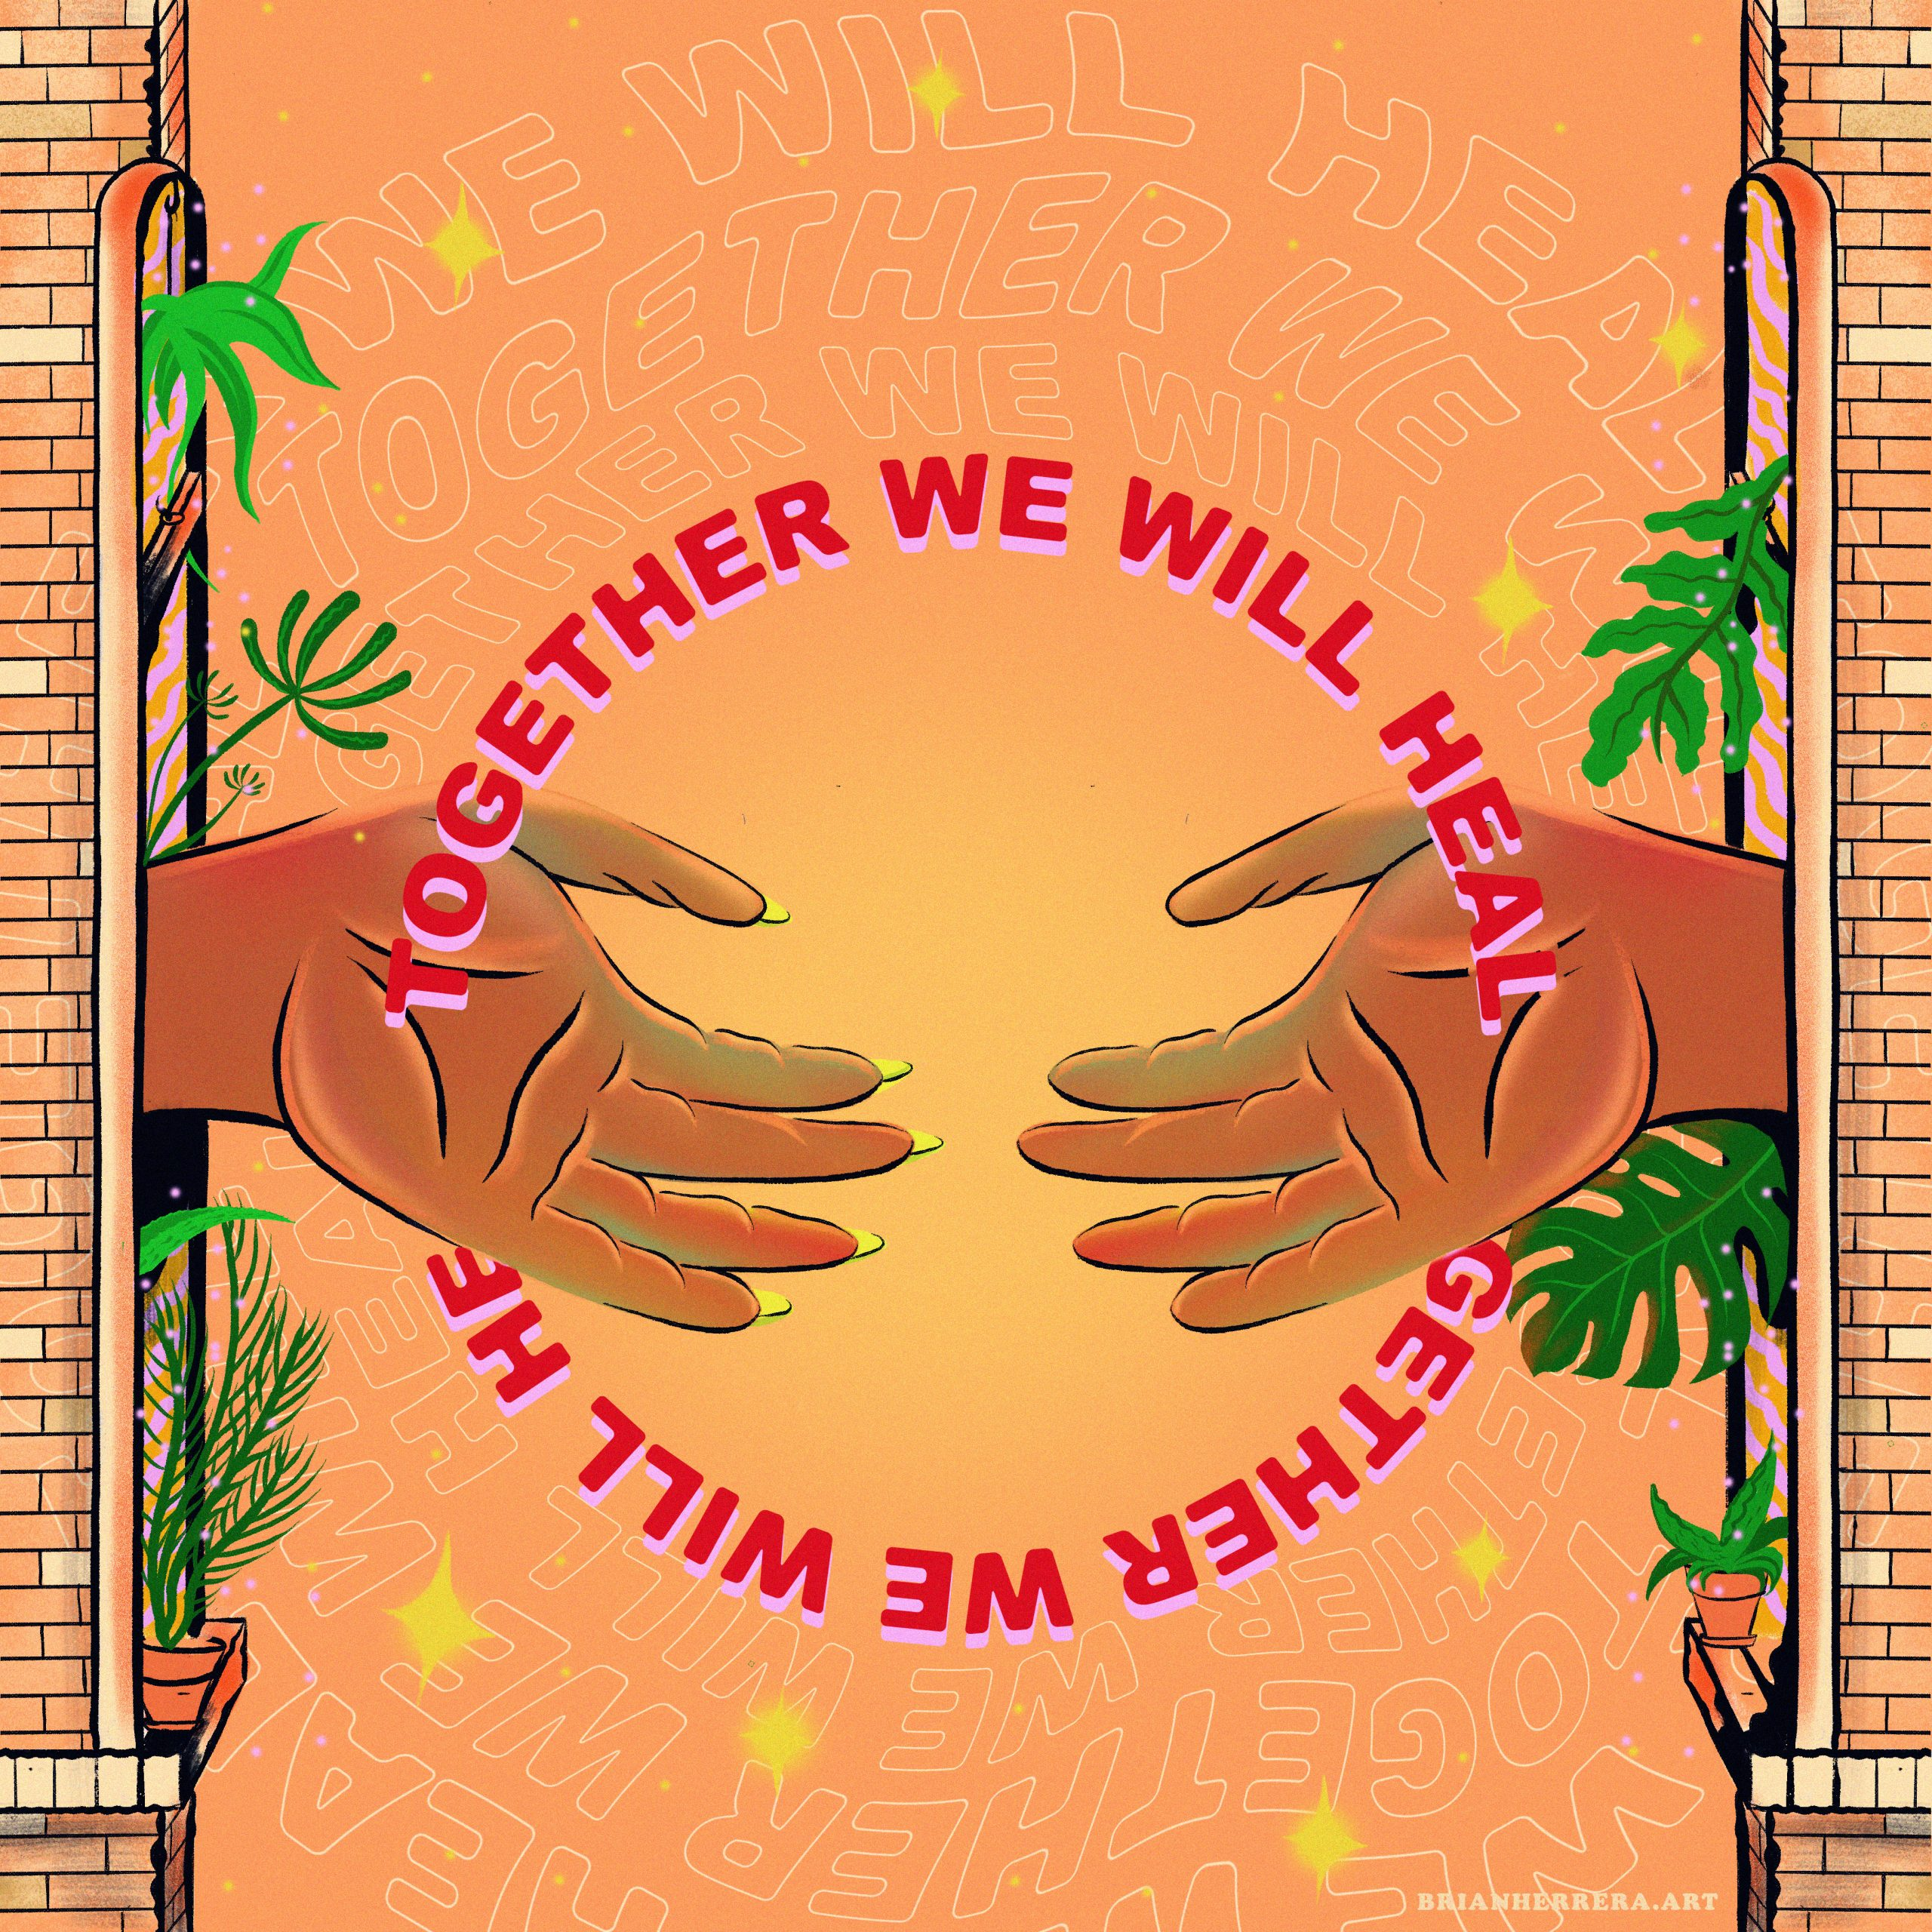 digital illustration of two tan hands on an orange background with the words together we will heal over them in a circle